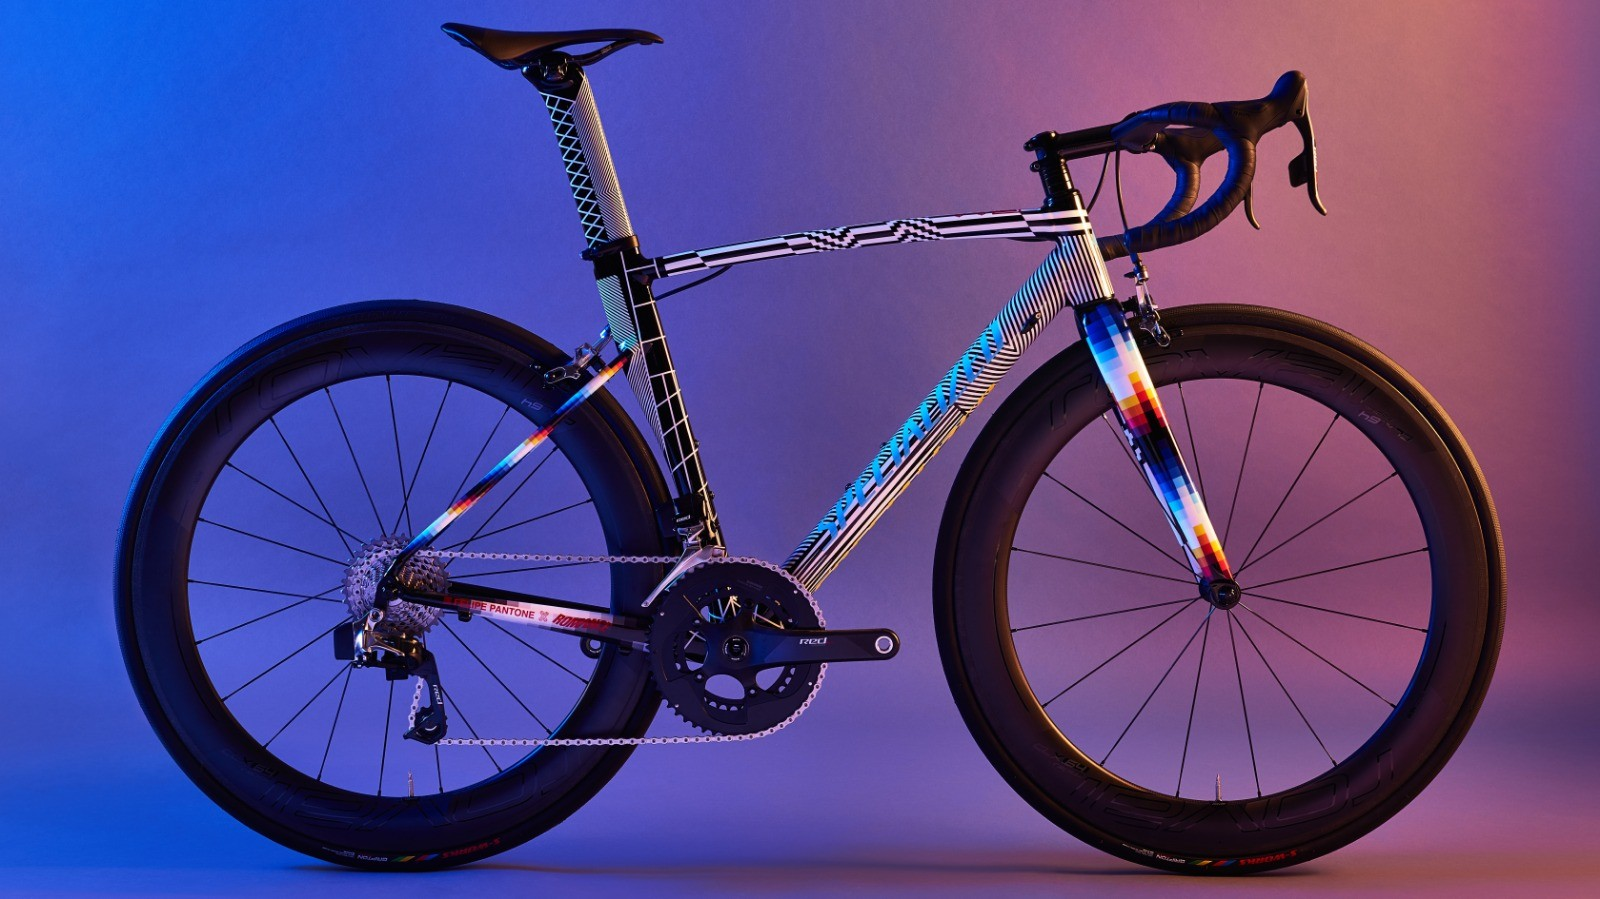 You can now bid on this custom Pantone x Romance Specialized Allez Sprint